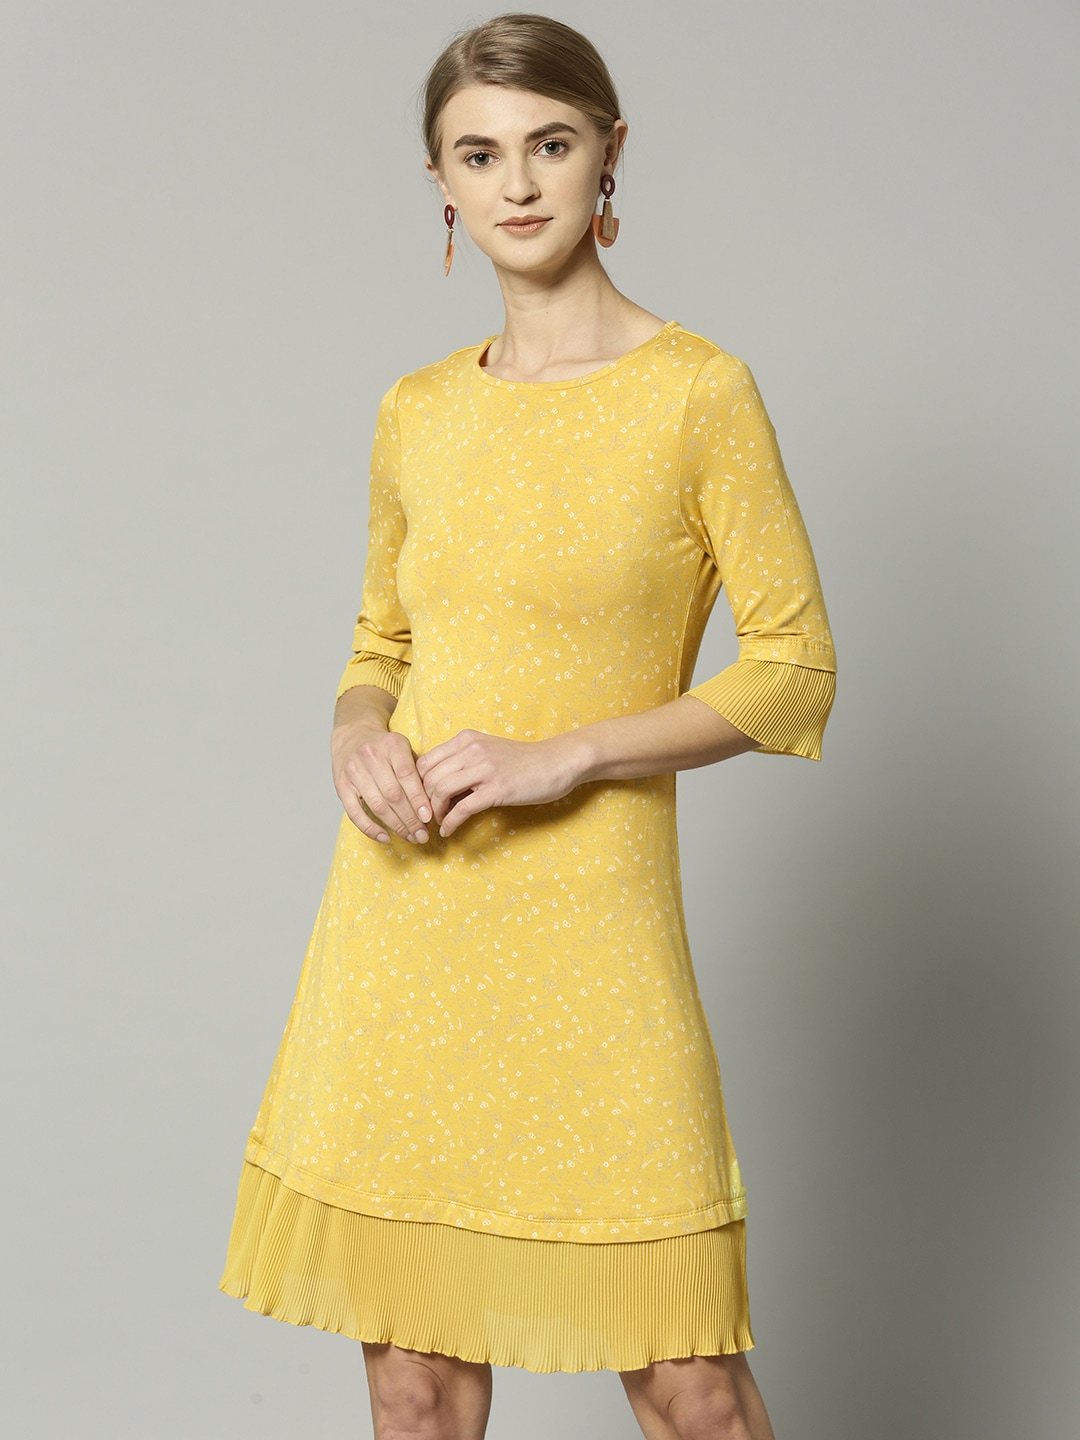 Marks and Spencer Clothing - Buy M S Men   Women Clothing Online - Myntra 980a3b184